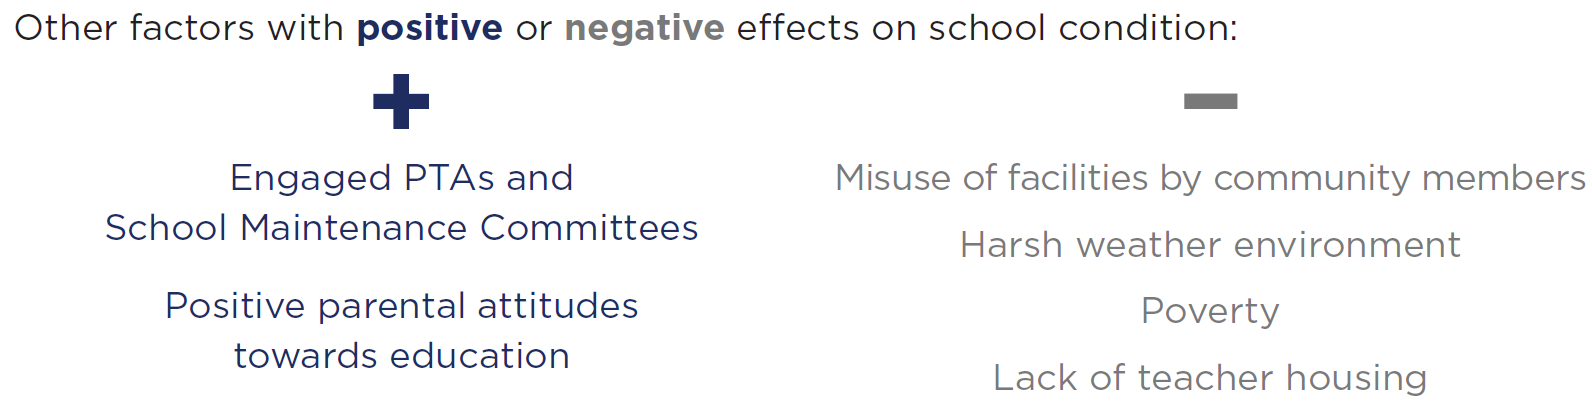 Additional factors with positive effects on school conditions include: engaged PTAs and school maintenance committees and positive parental attitudes towards education. Negative effects on school conditions include: misuse of facilities by community members, harsh weather environment, poverty and lack of teacher housing.